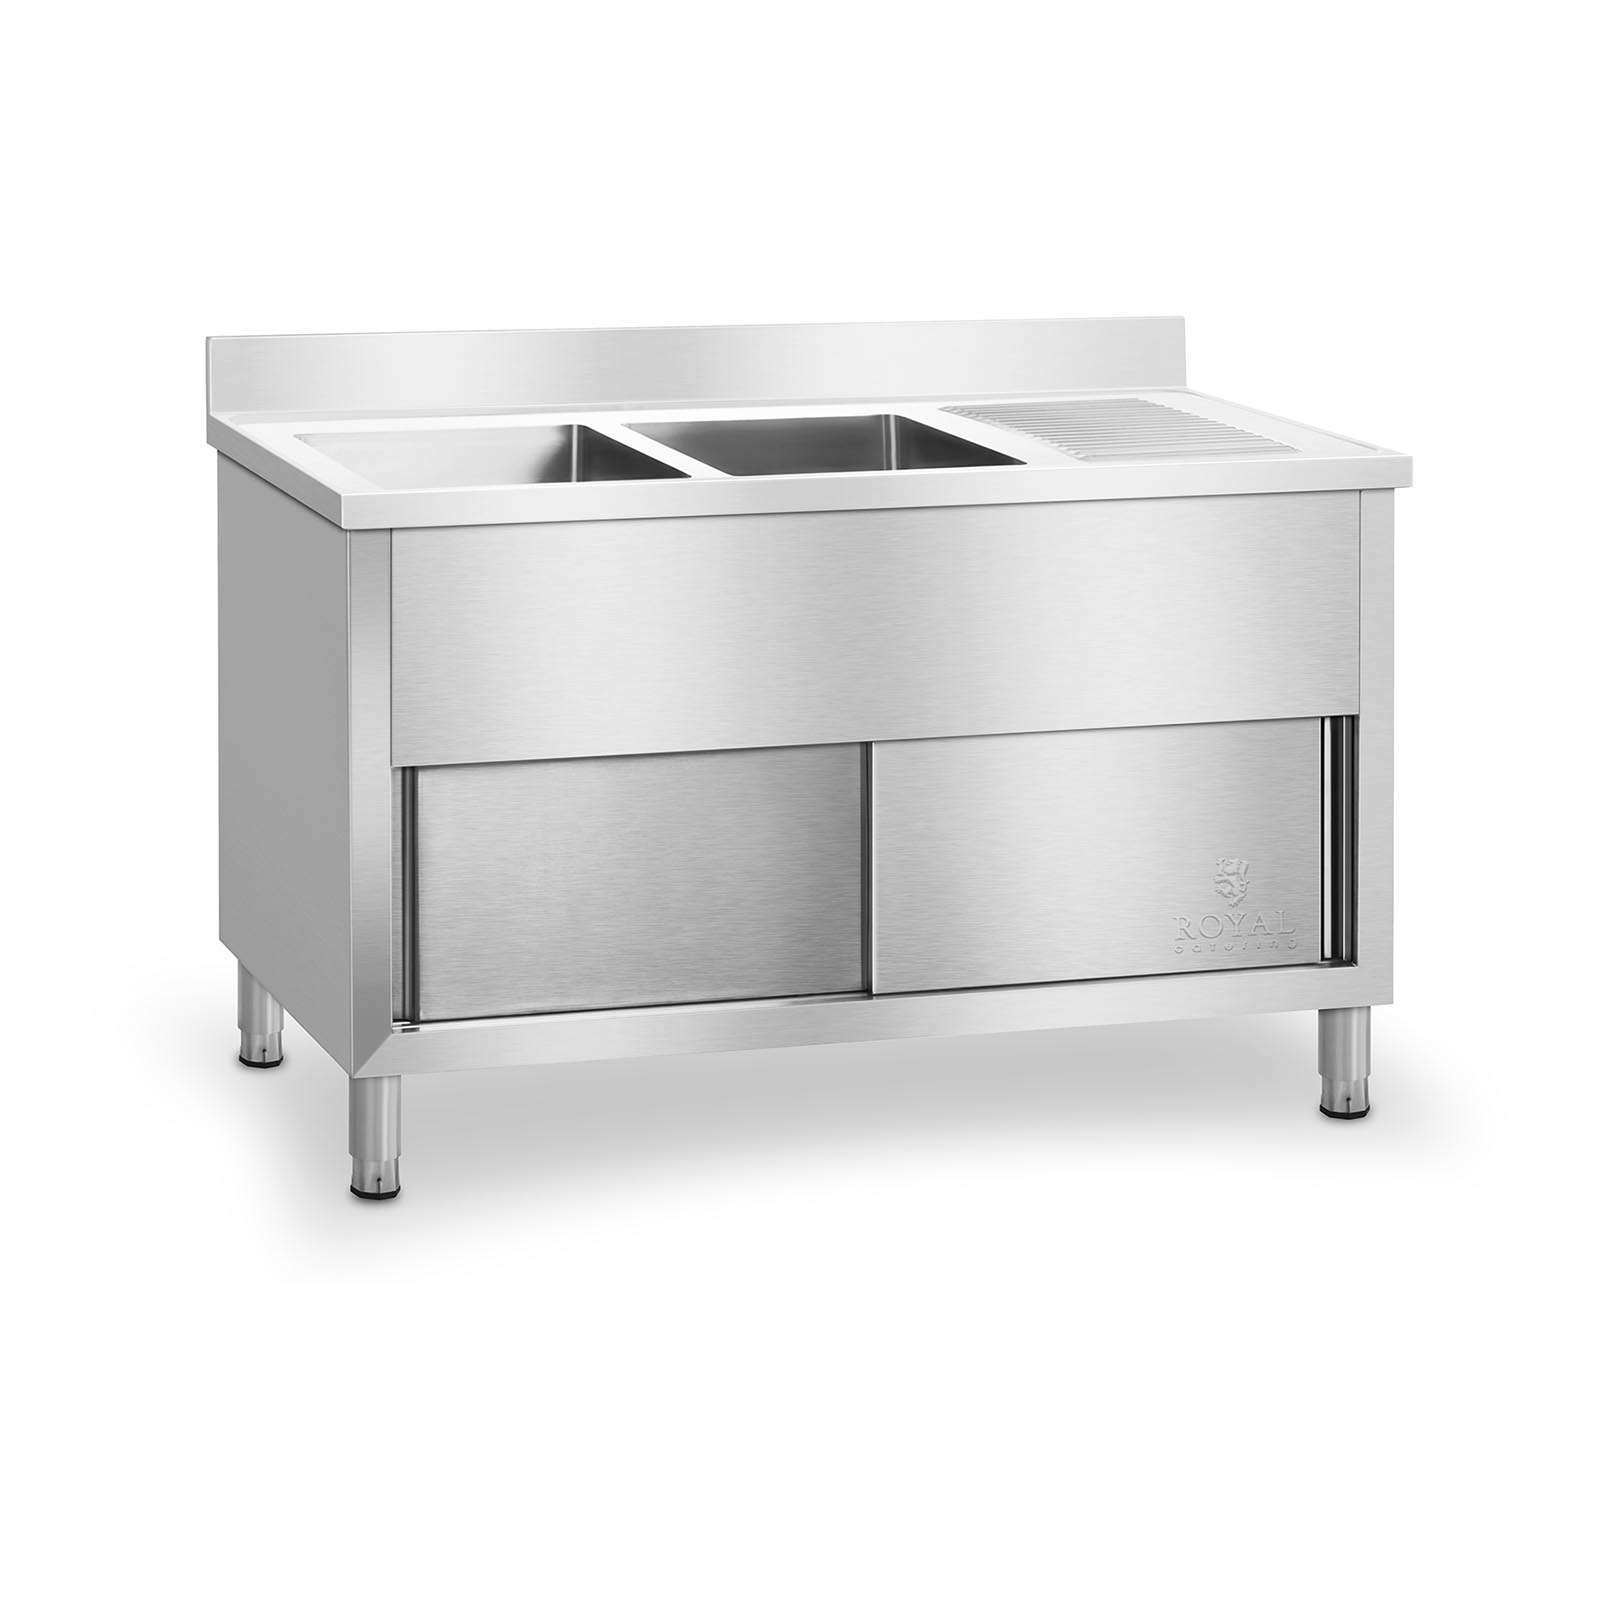 Factory Seconds Kitchen Cabinets: Double Sink Cabinet